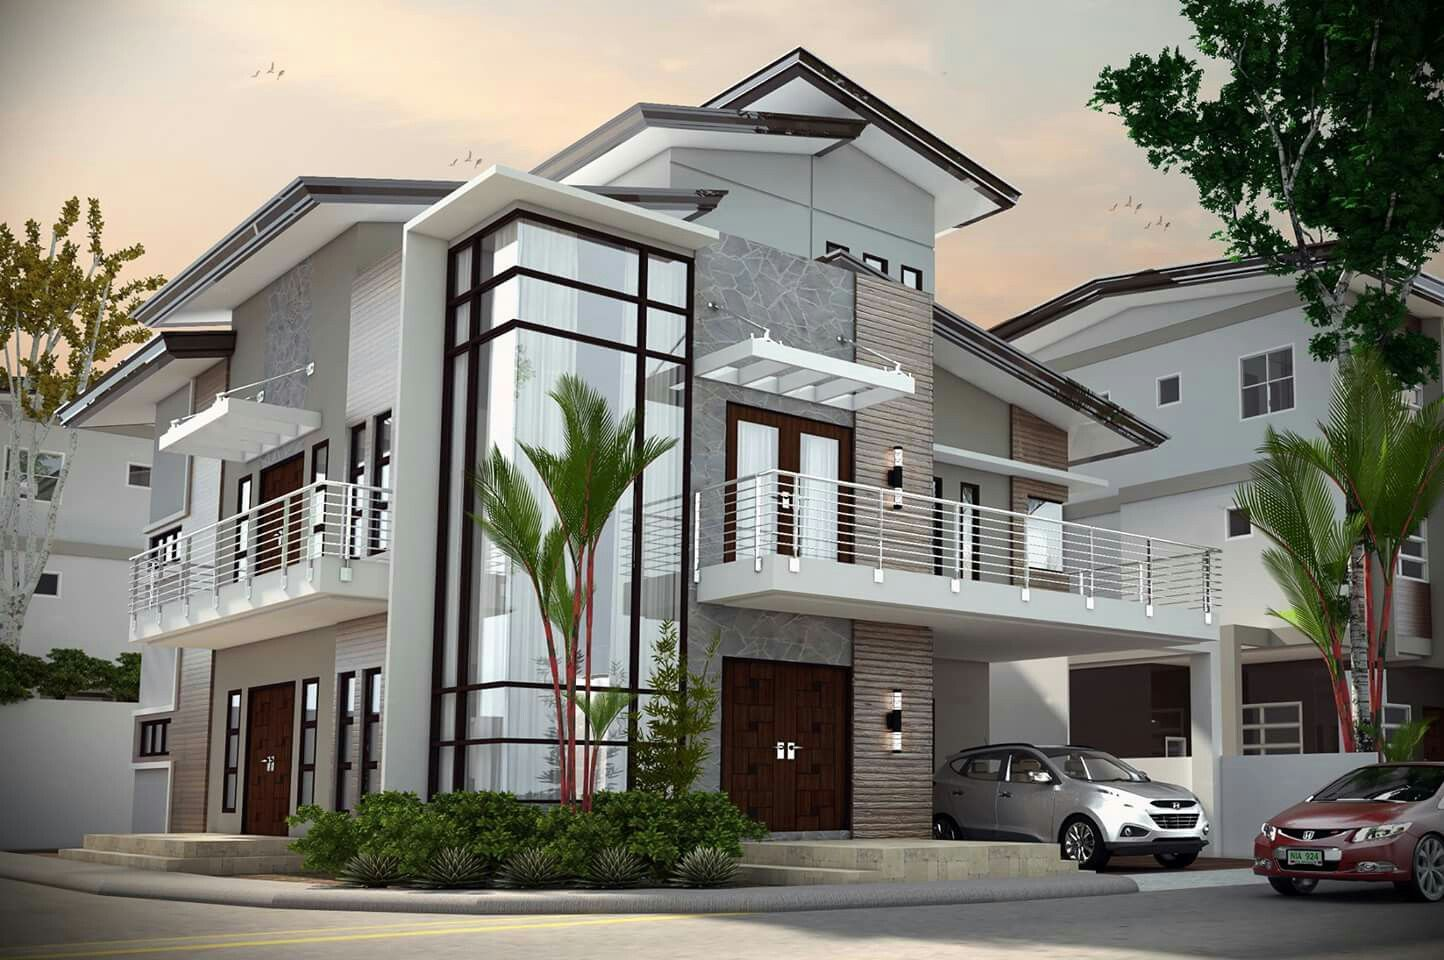 Exterior design for home  Pin by Marirose Lazo on Facade  Pinterest  Modern house design